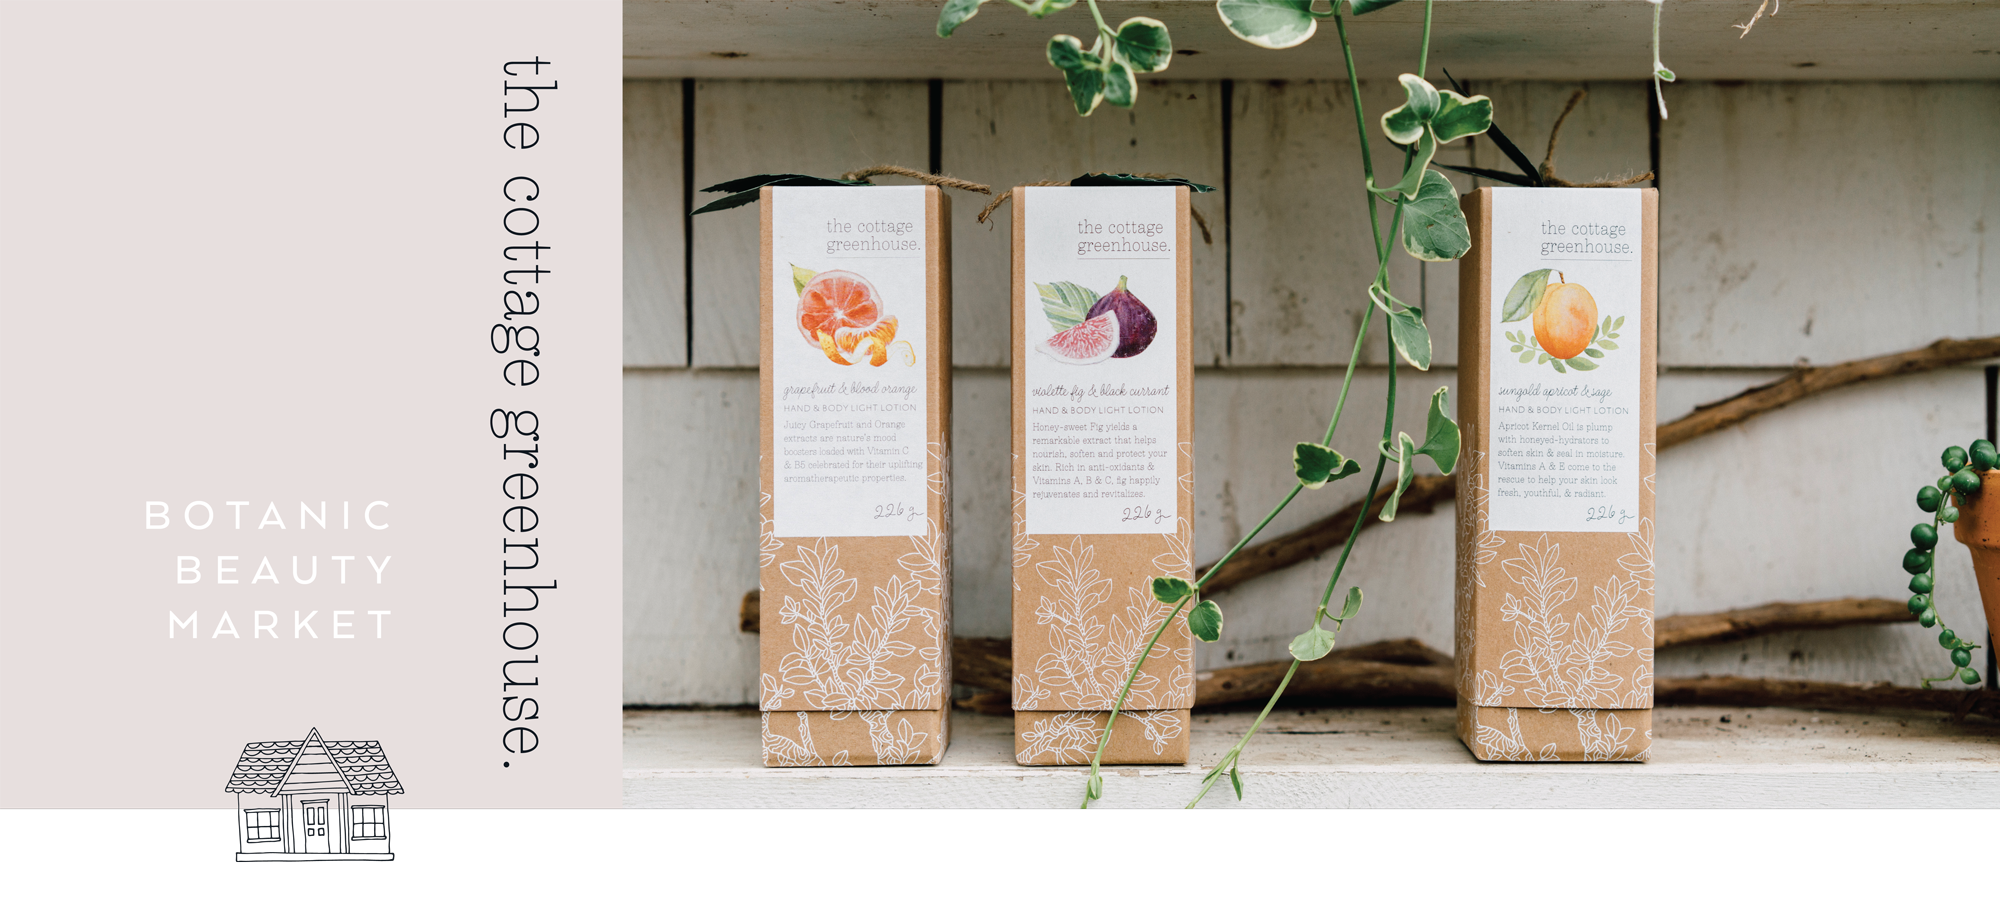 The Cottage Greenhouse | Botanic Beauty Market